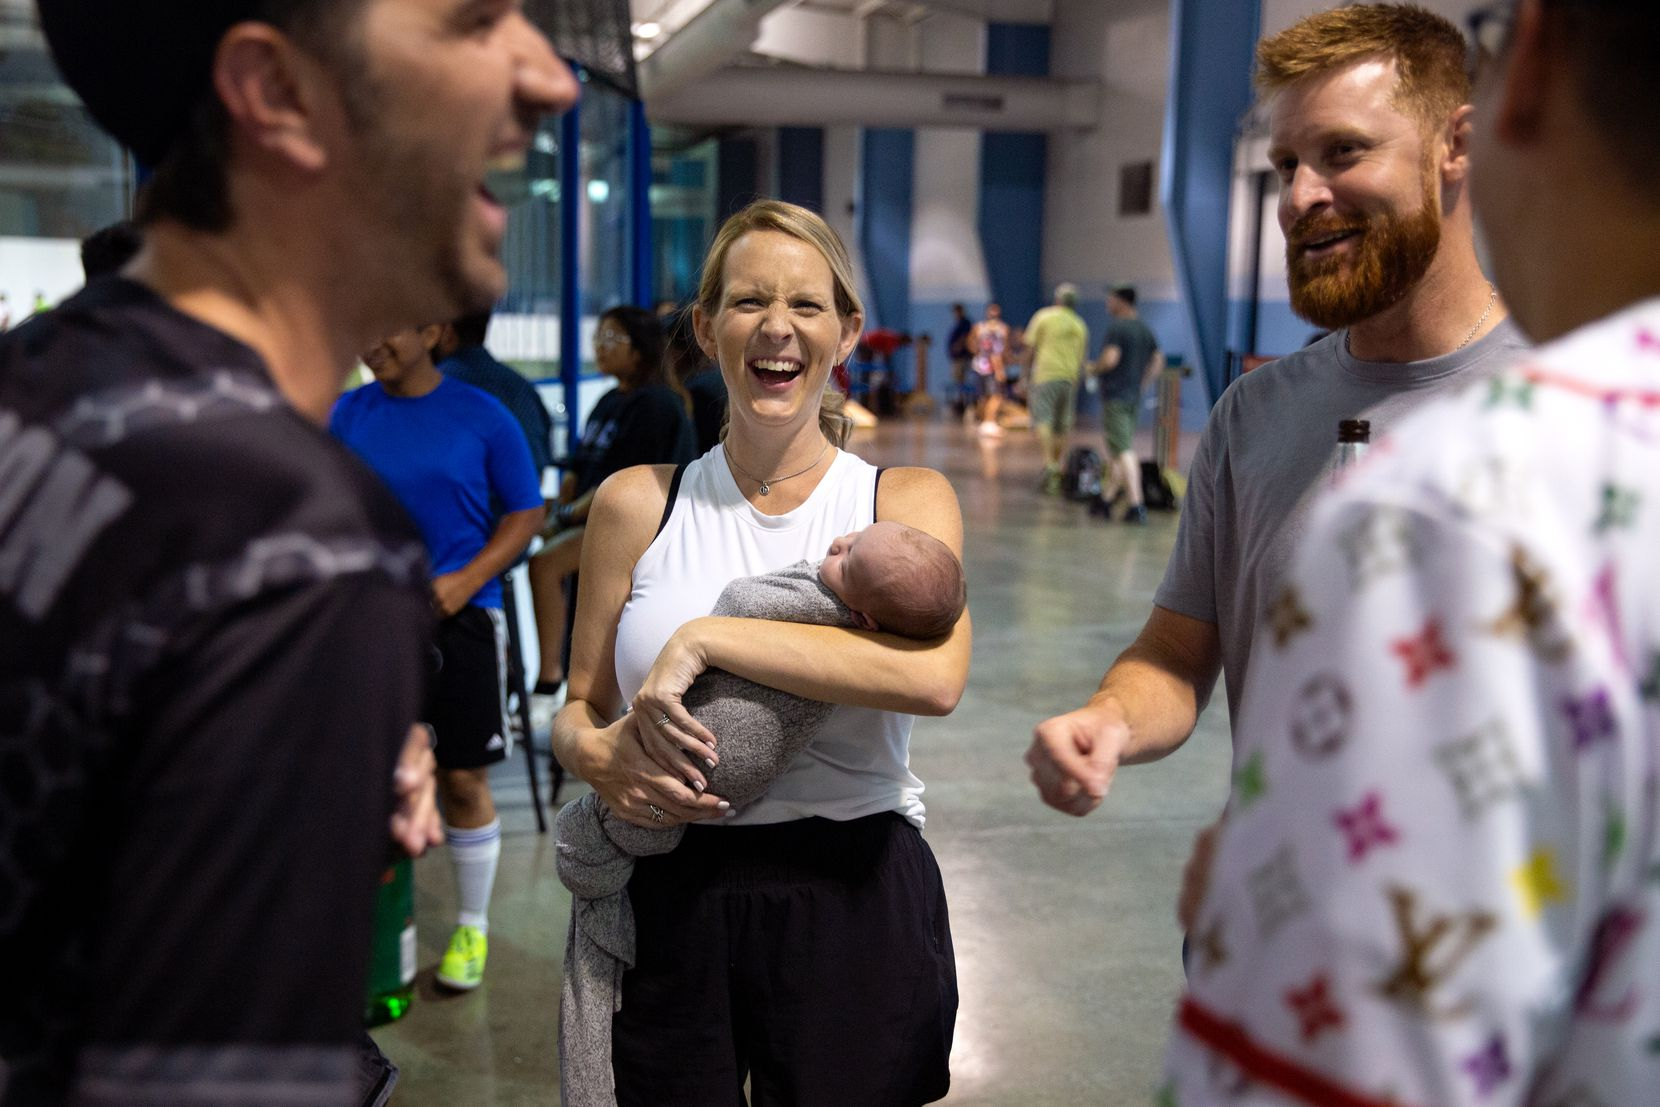 Lynsey Belloso, centered, laughs with fellow cornhole competitors as she carries her 8-day-old son Brody during a cornhole tournament hosted by North Texas Cornhole at the Blue Sky Sports Center in Allen, TX on July 1, 2021. Despite her recent delivery, Lynsey was excited and ready to participate in the tournament.